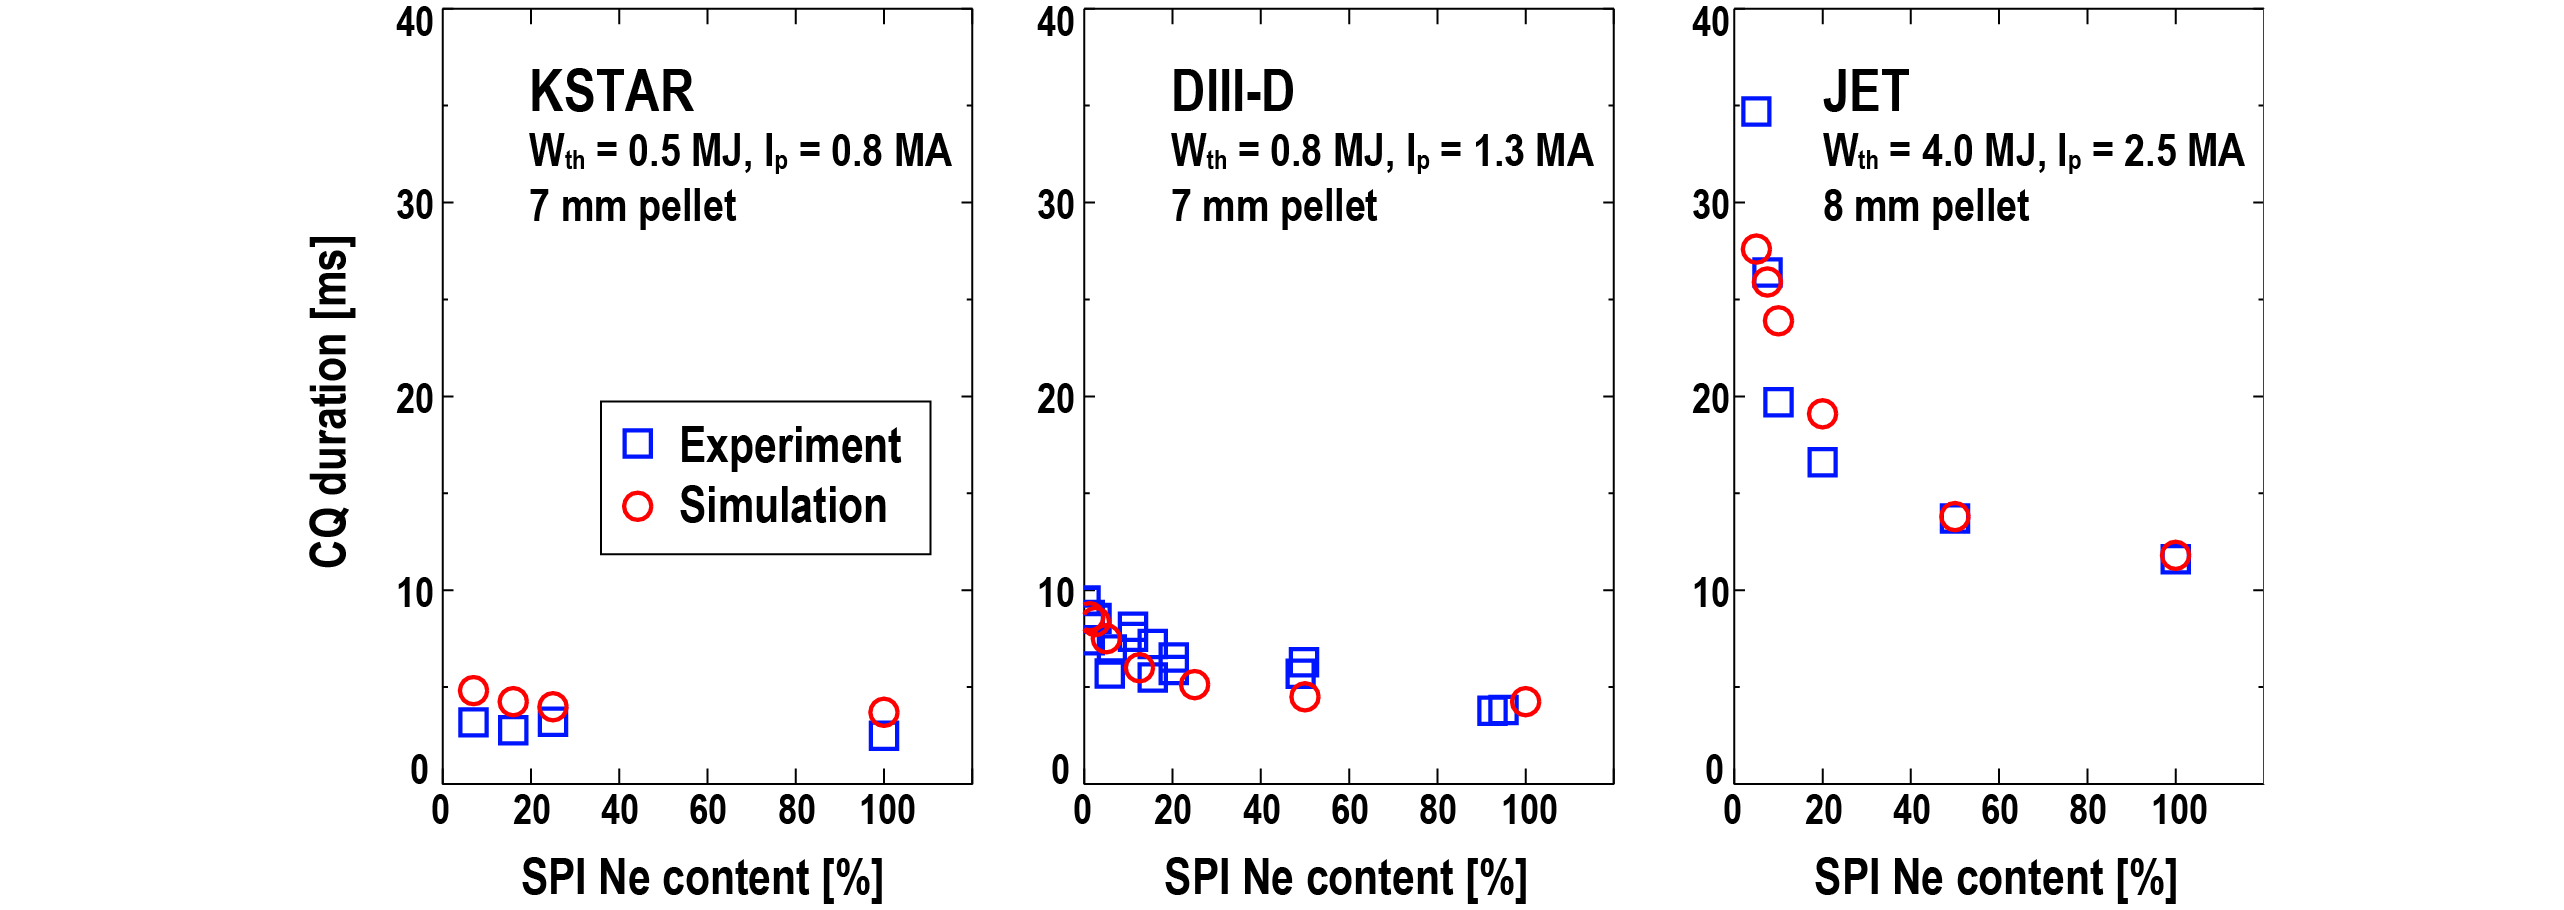 Simulated CQ durations are in good agreement with experiments in all three devices, as the neon impurity content in the shattered pellet is systematically varied.